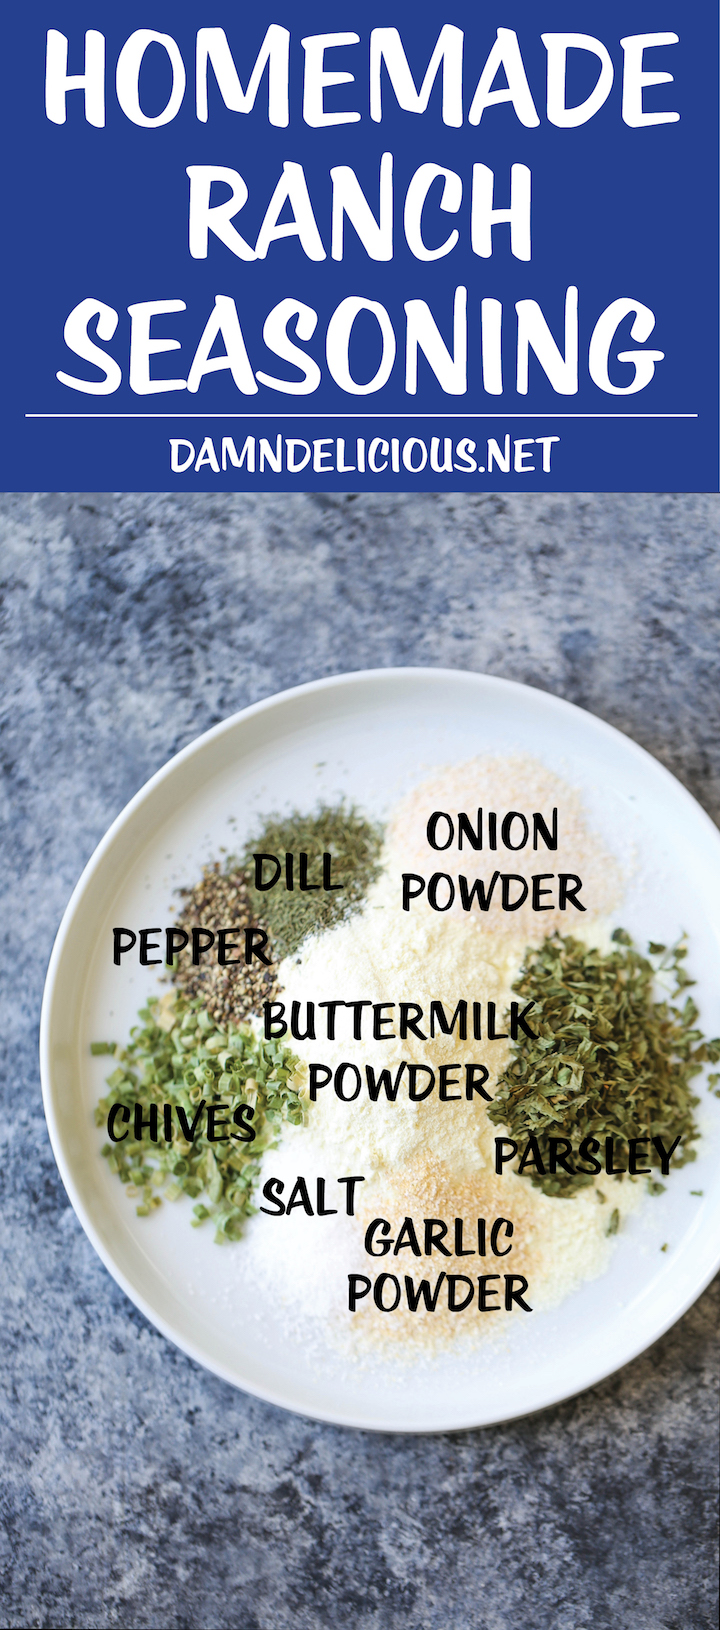 DIY Homemade Ranch Seasoning Mix - You can skip the store-bought seasoning packets. This homemade version takes 5 min using ingredients you already have!